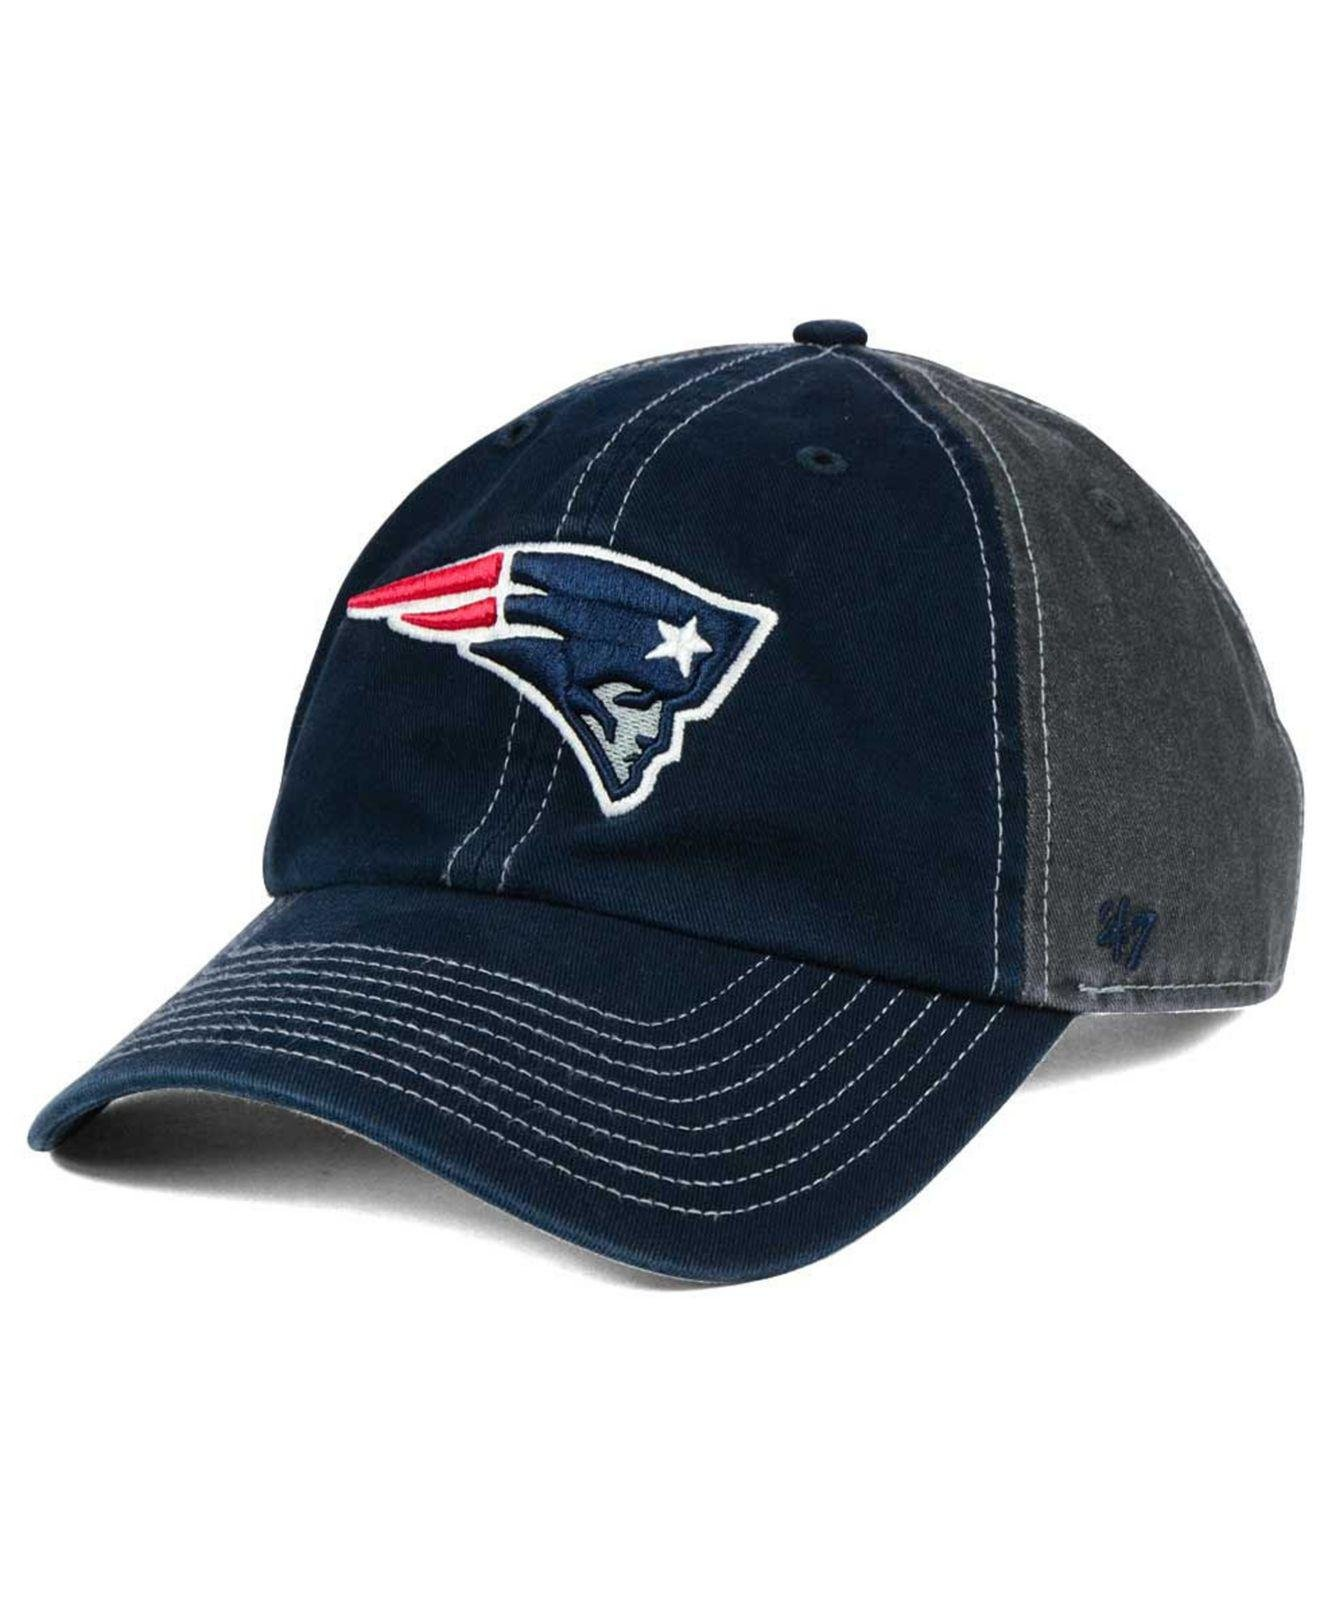 94be14f584a71 ... spain lyst 47 brand new england patriots transistor clean up cap in  gray b82f9 74792